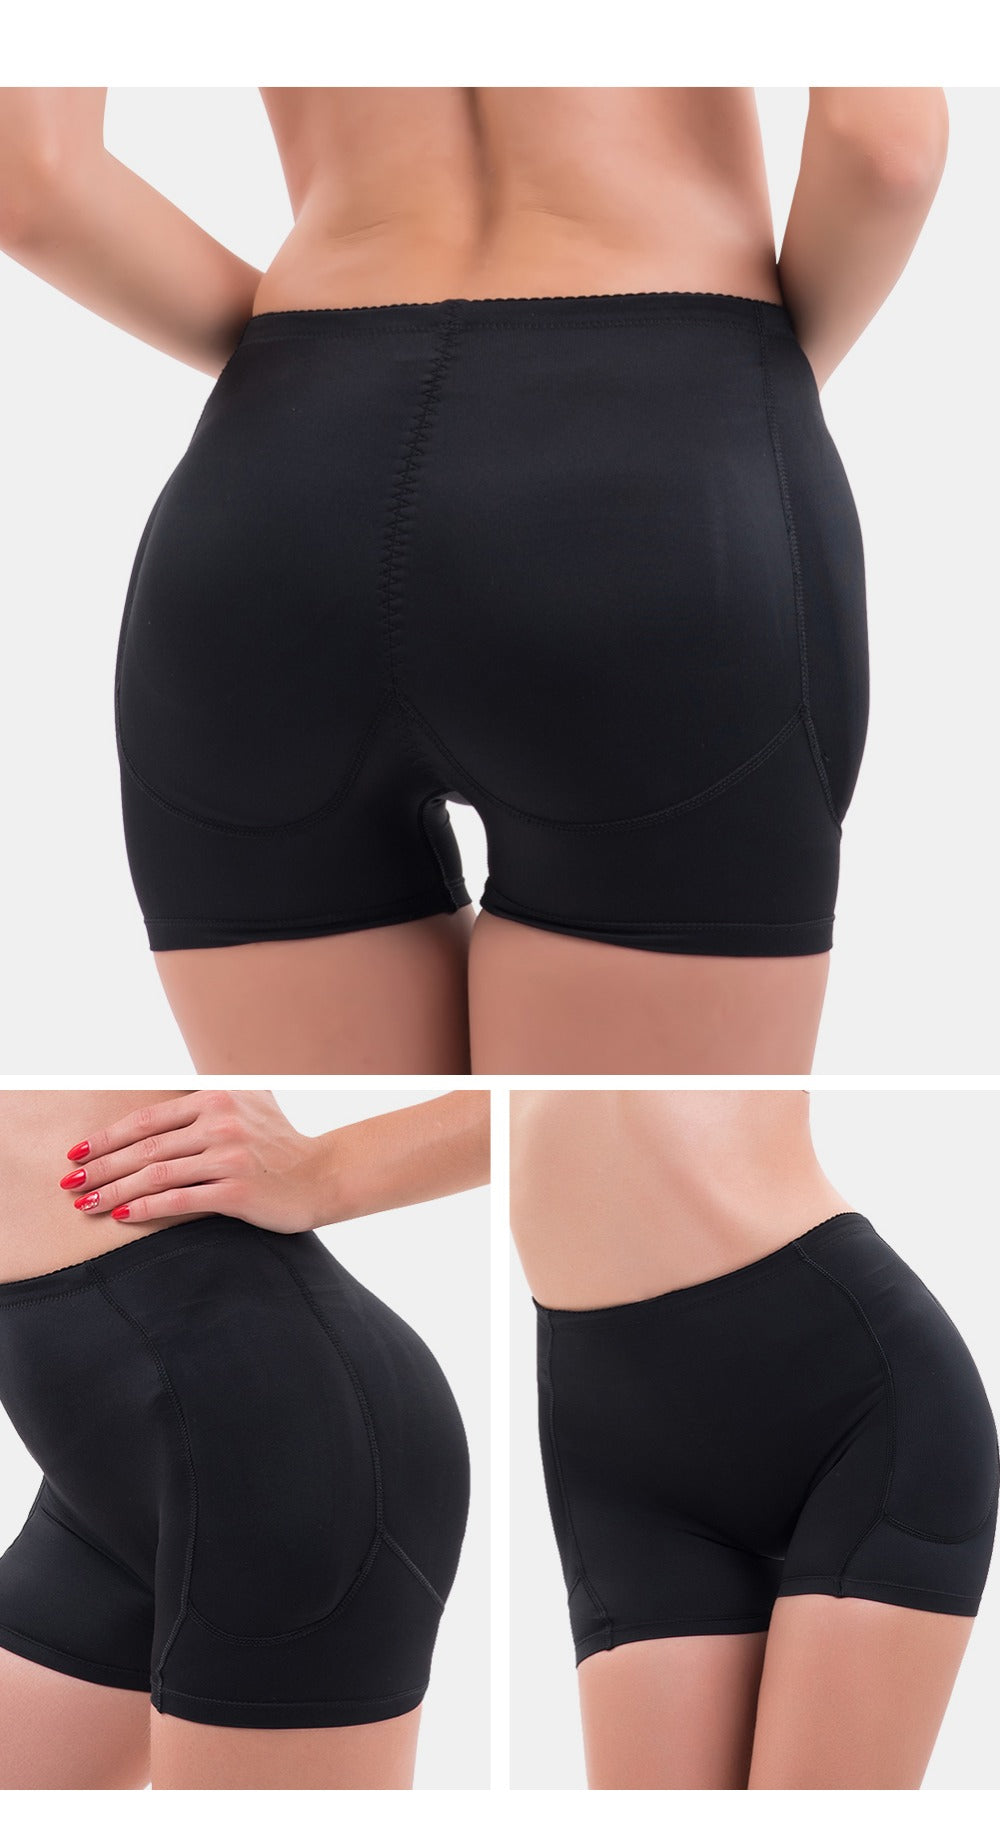 Body Shaper Butt Enhancer Briefs With Hips Pads Push Up Hot Pants Slimming Lingerie Hip Shaper High Waist Sexy Curve Enhancing Shapewear Lingerie